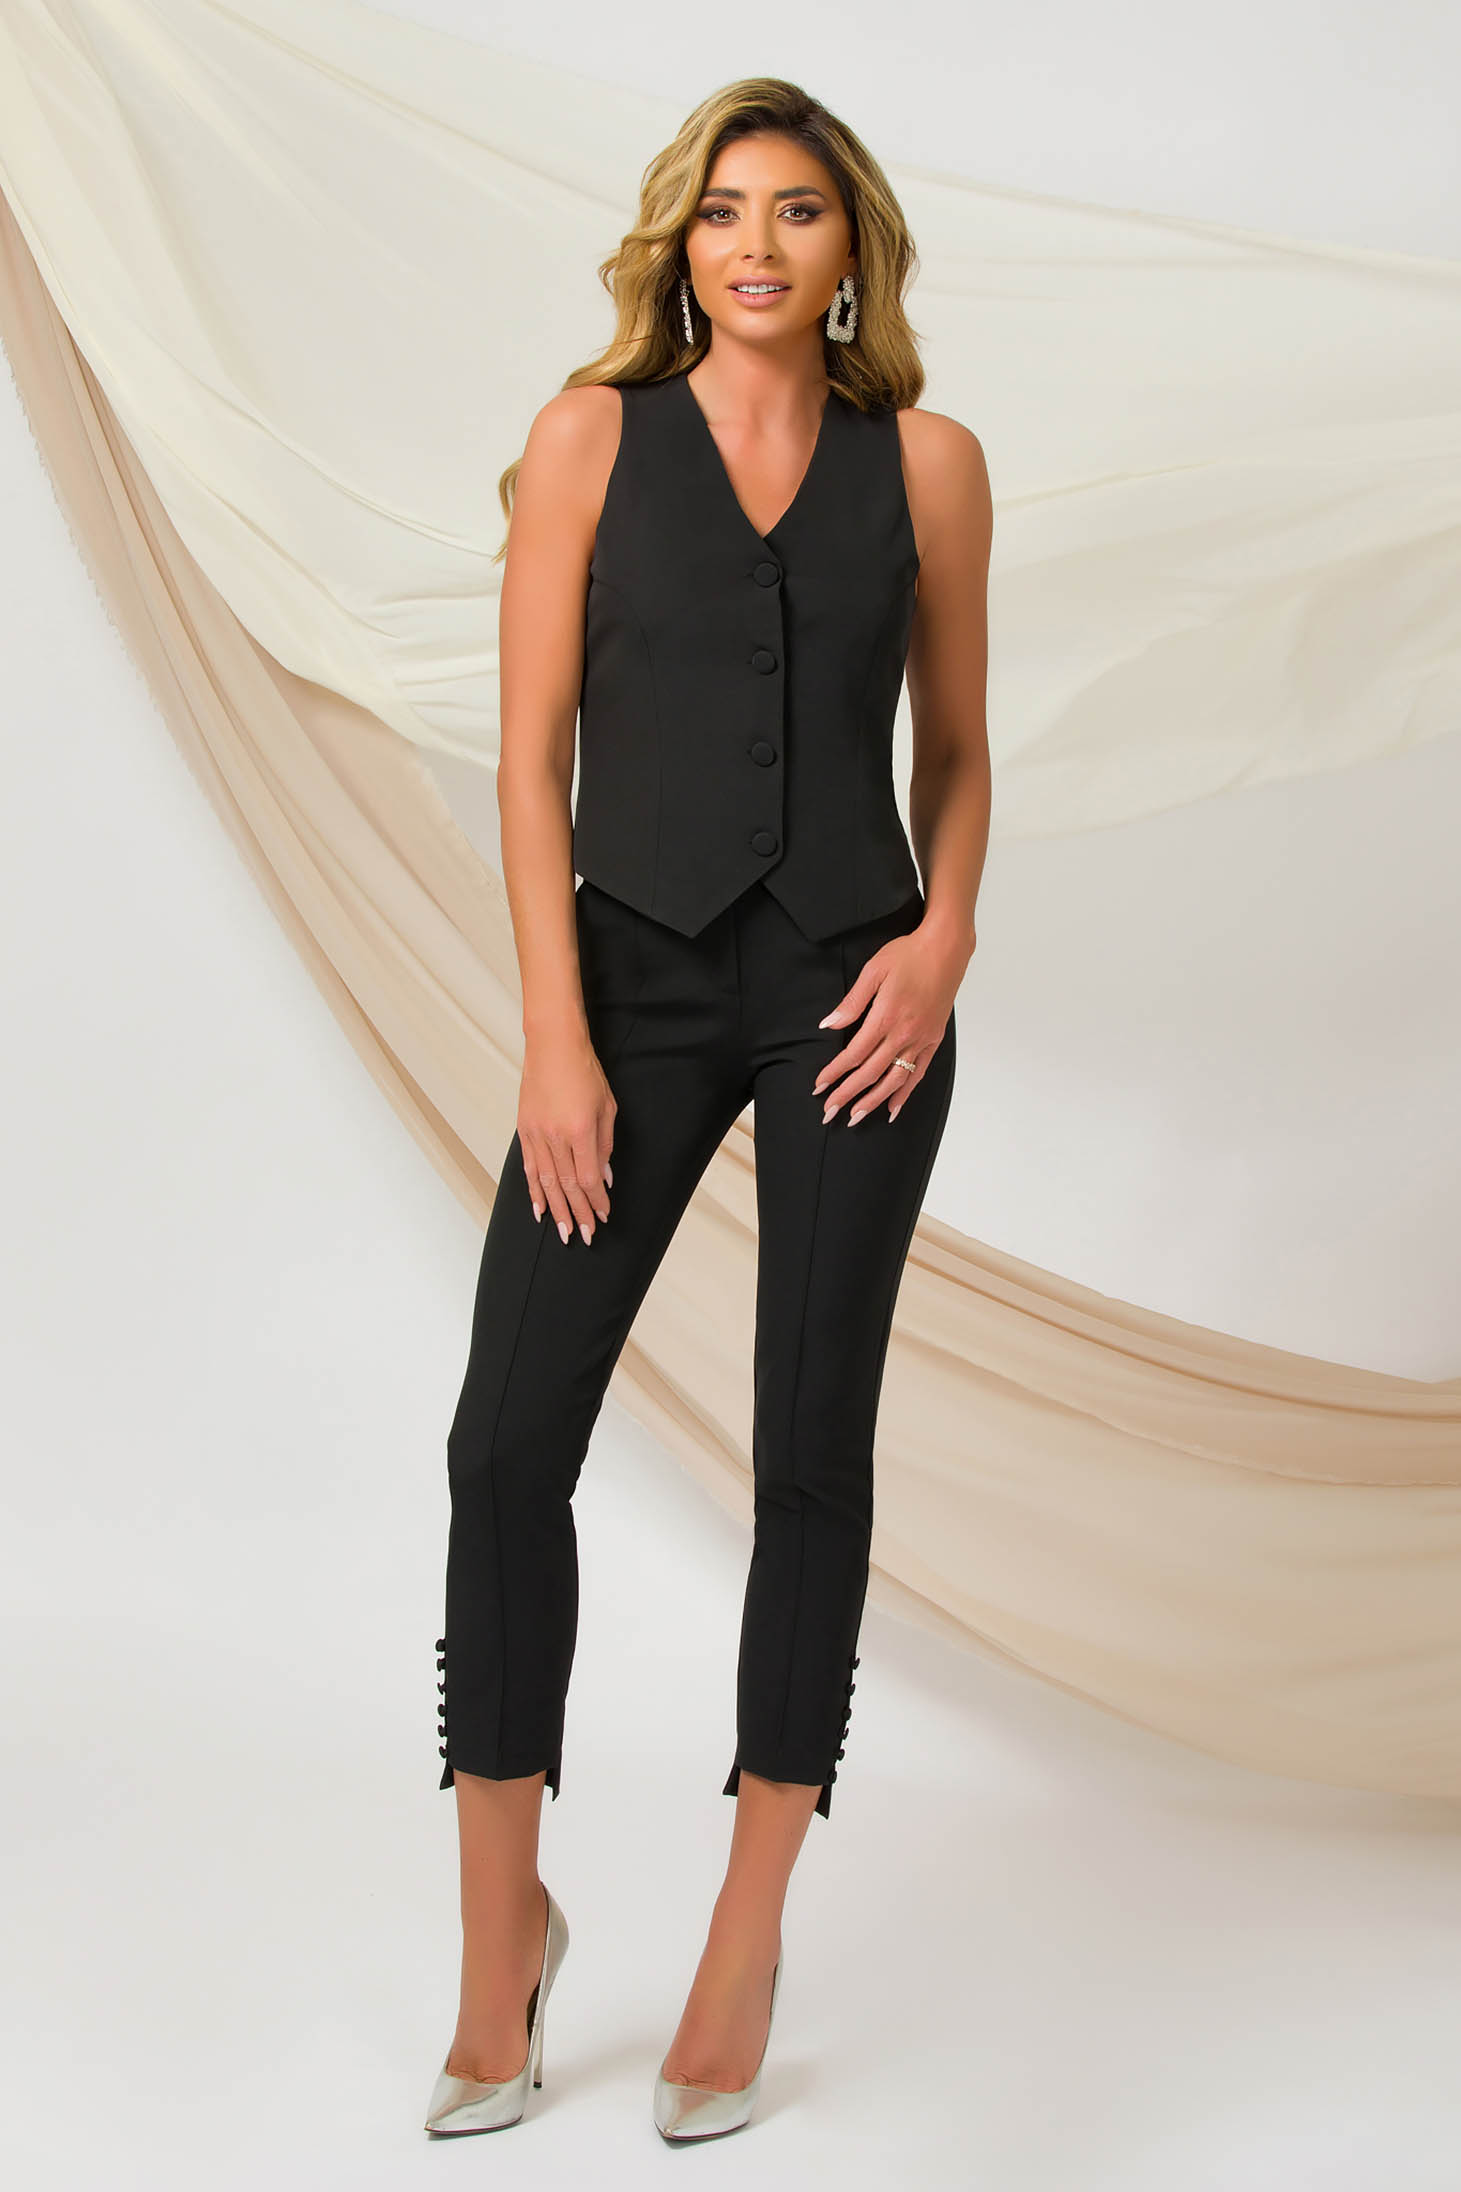 Black trousers office conical slightly elastic fabric with button accessories